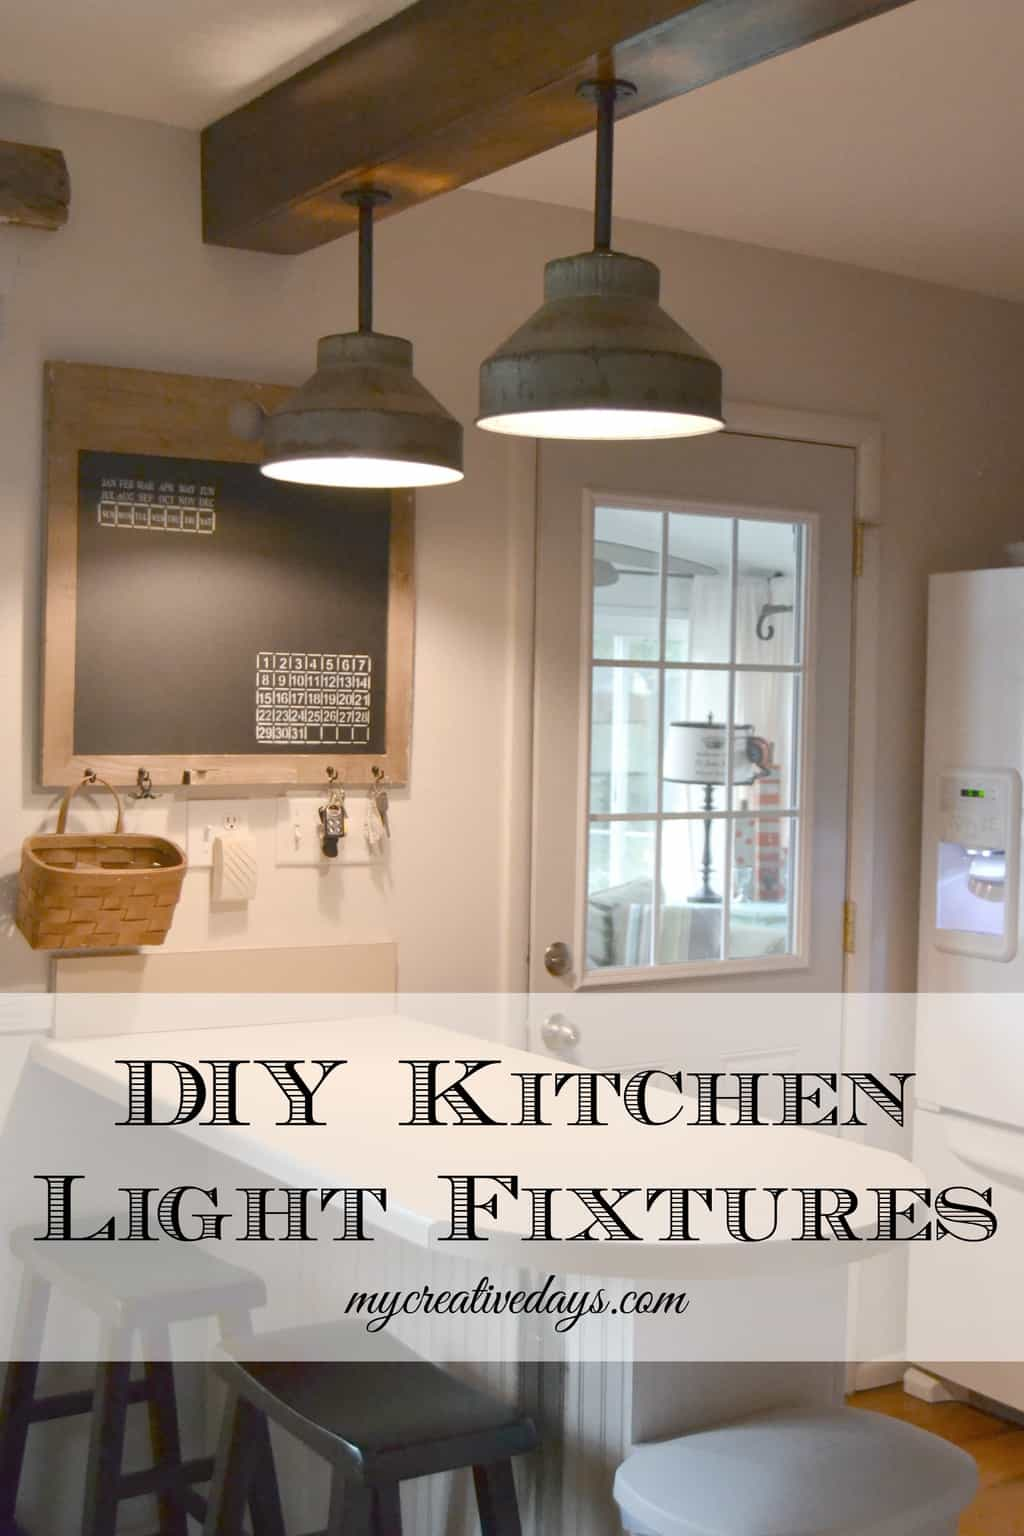 DIY Kitchen Light Fixtures Part 2  My Creative Days